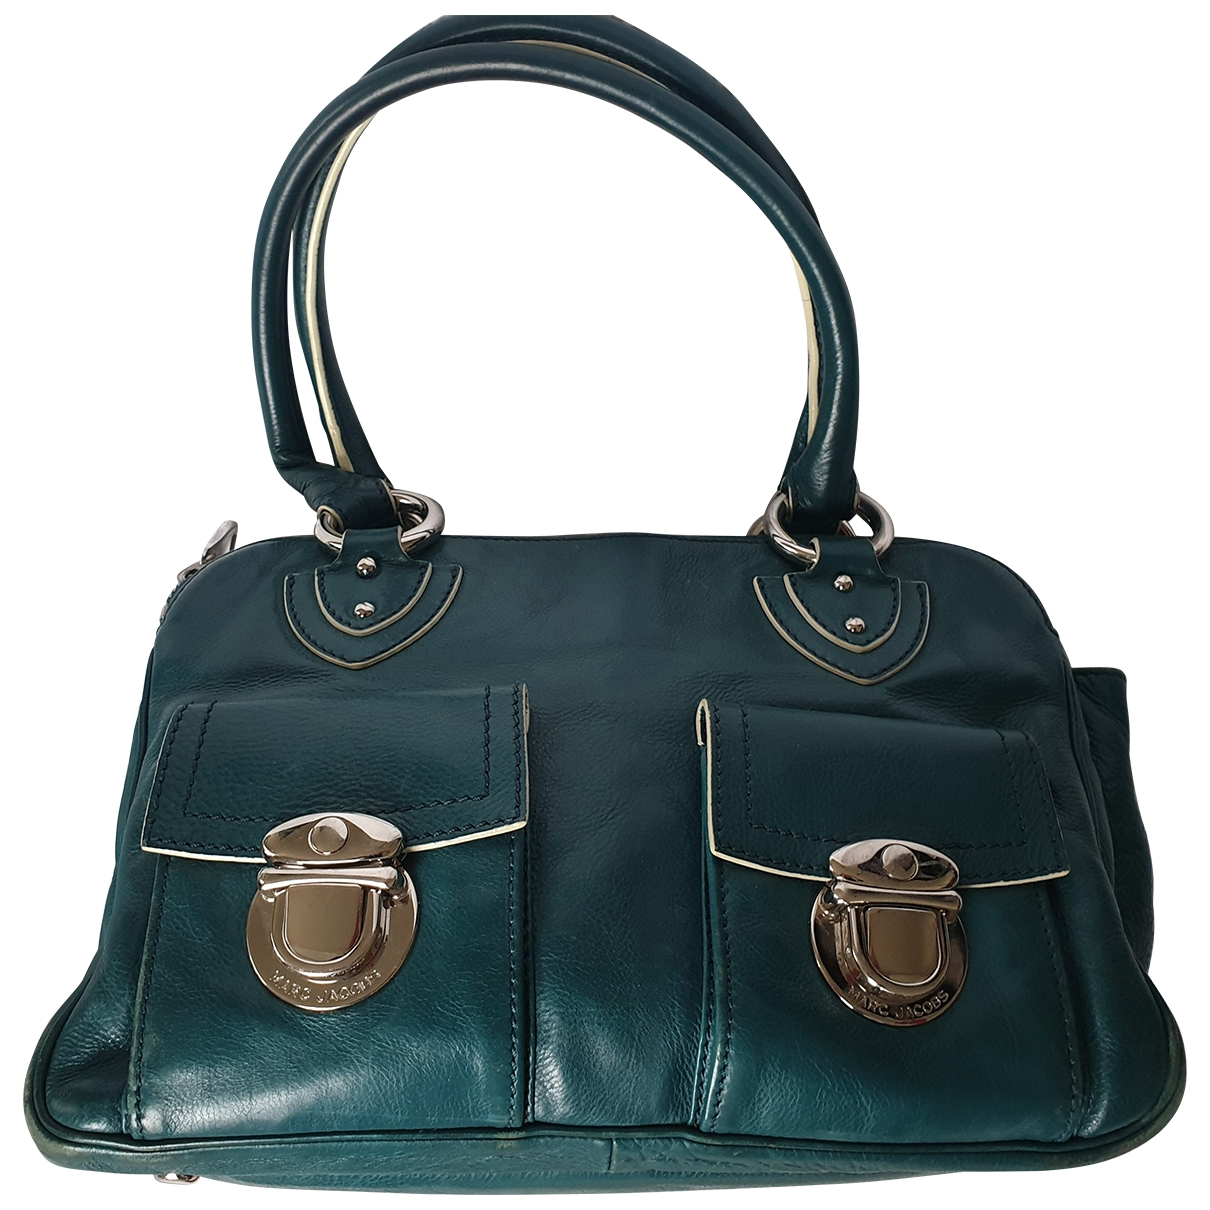 Marc Jacobs \N Green Leather handbag for Women \N